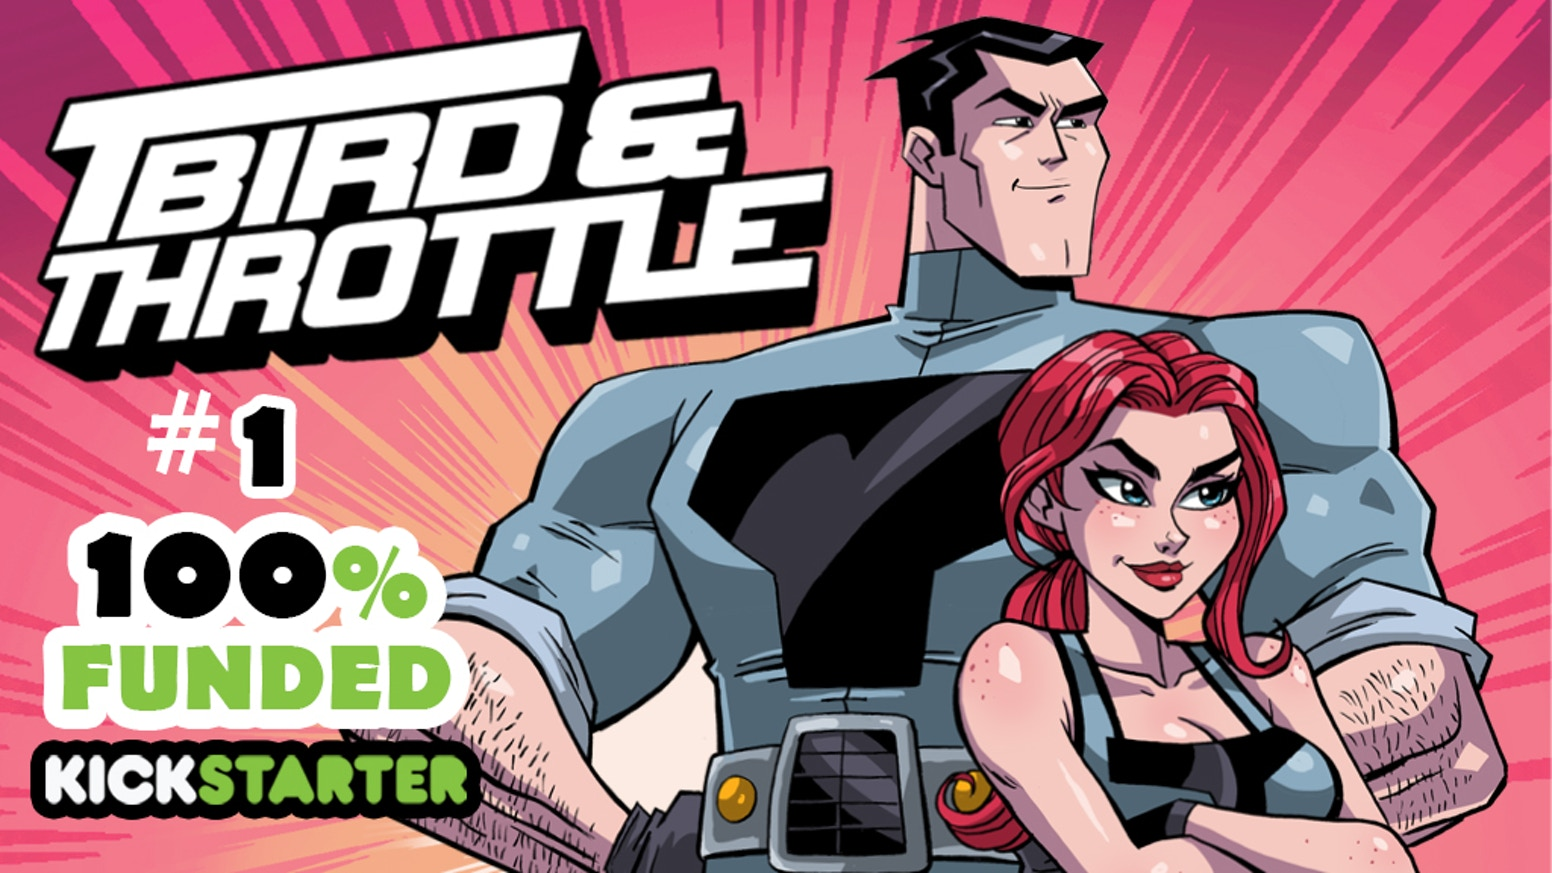 T-Bird & Throttle is a sci-fi superhero epic 20 years in the making. Inspired by comics like The Dark Knight Returns and Fantastic 4.